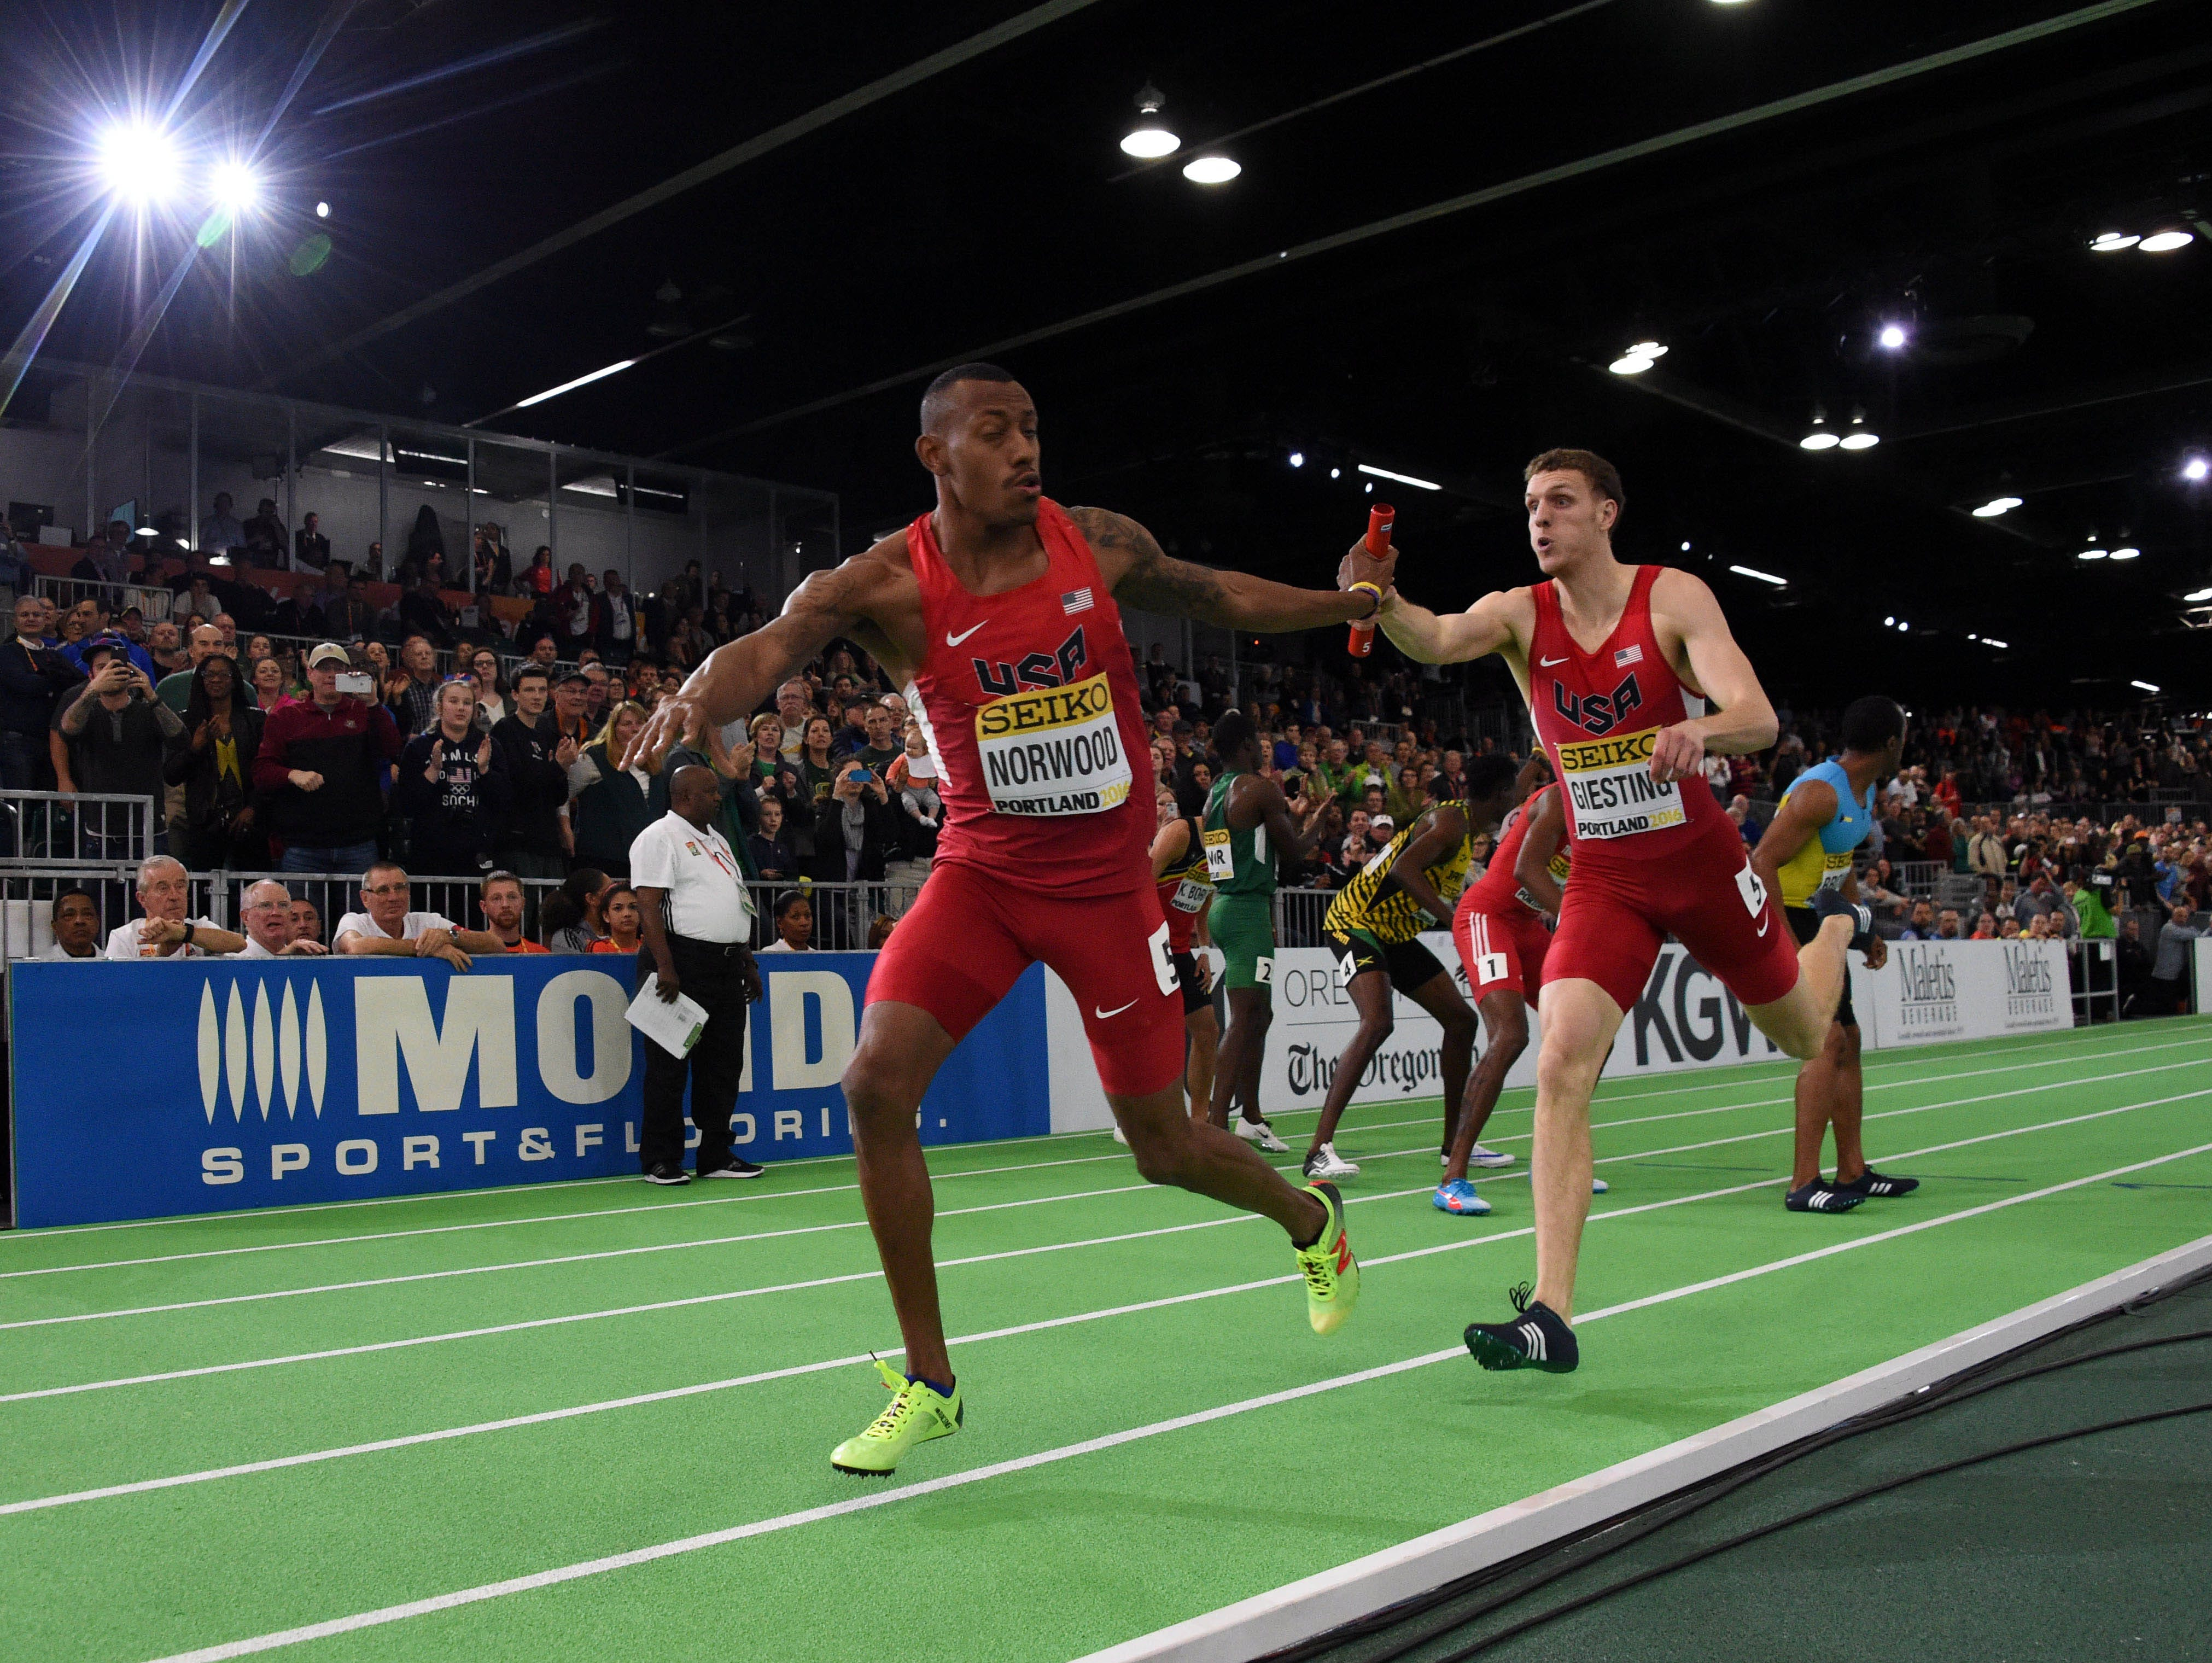 Vernon Norwood takes the handoff from Chris Giesting on the anchor leg of the victorious United States 4 x 400m relay that won in 3:02.45 for the No. 3 mark on the all time list during the 2016 IAAF World Championships in Athletics at the Oregon Convention Center.